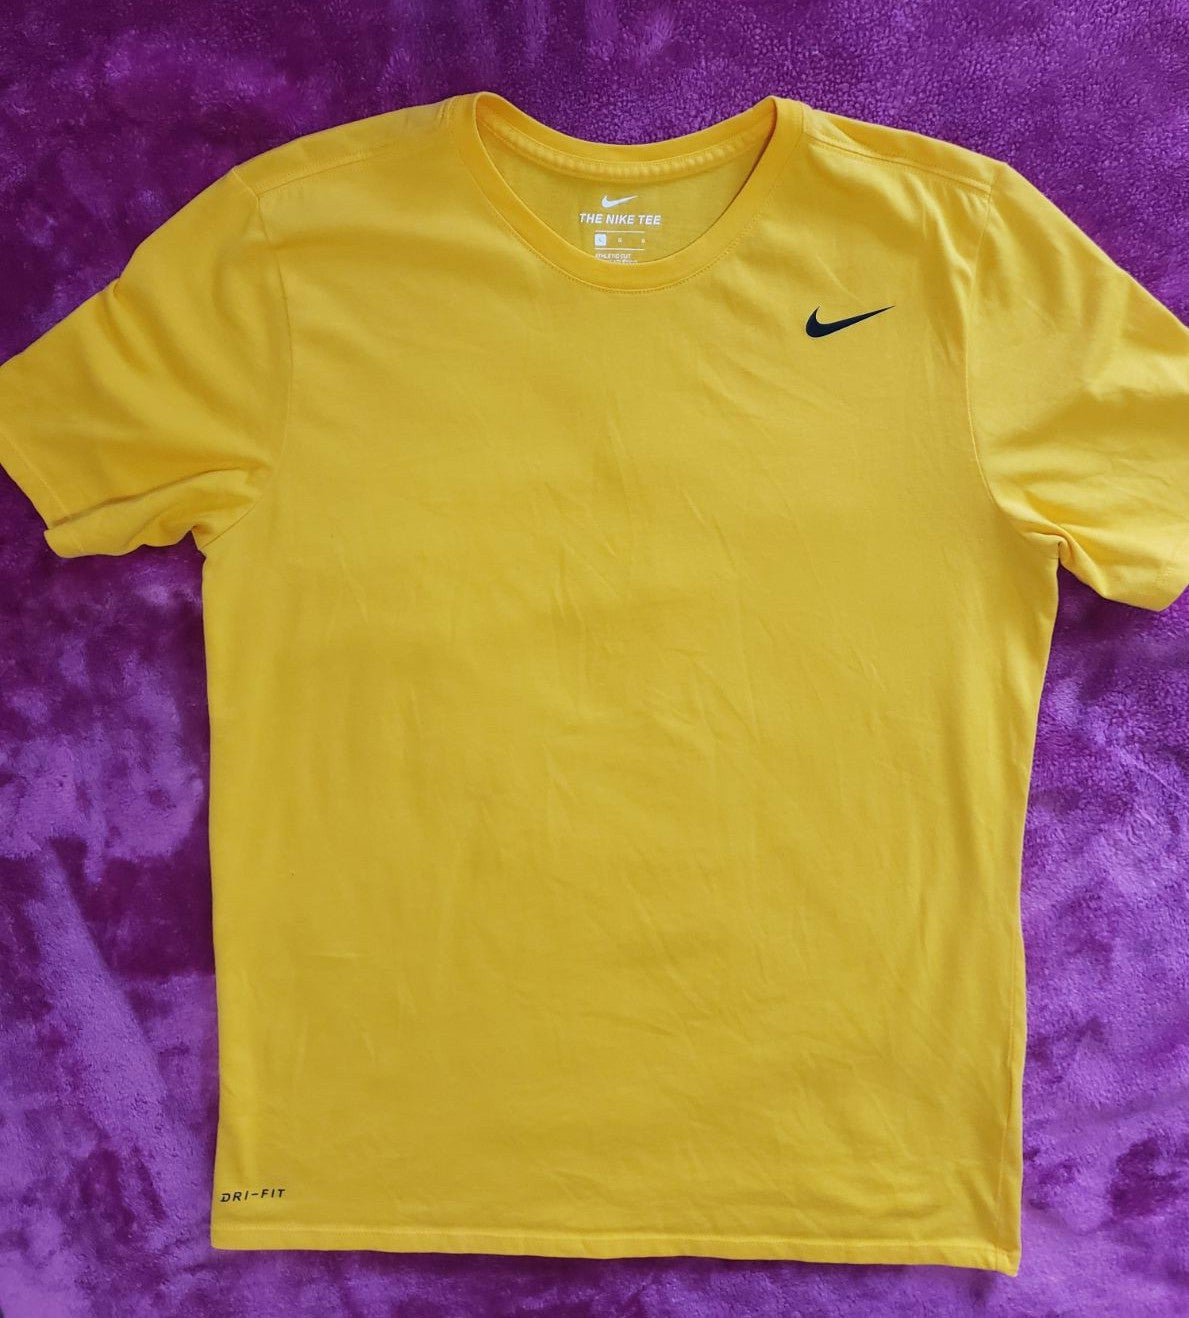 Nike athletic tee